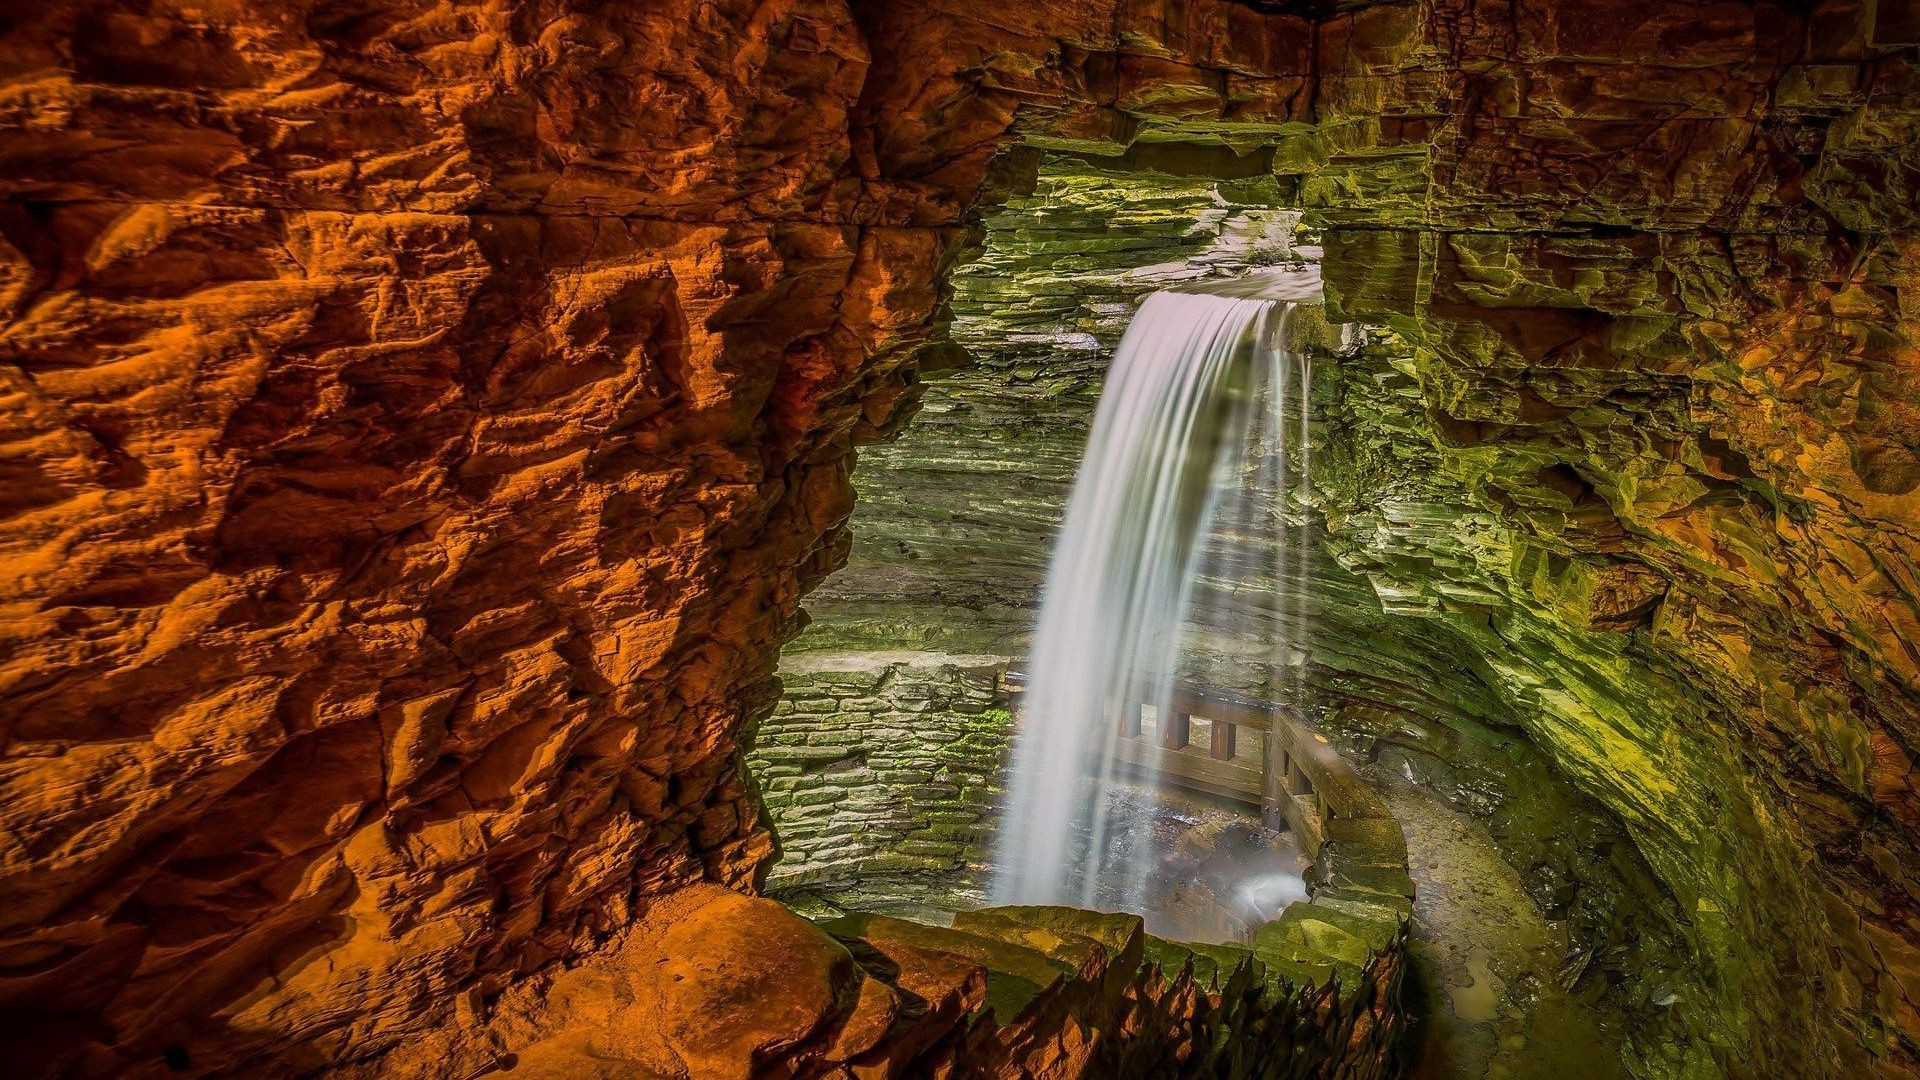 Happy Fall Wallpaper 1366x768 Nature Rock Cave Waterfall Stones Long Exposure Path